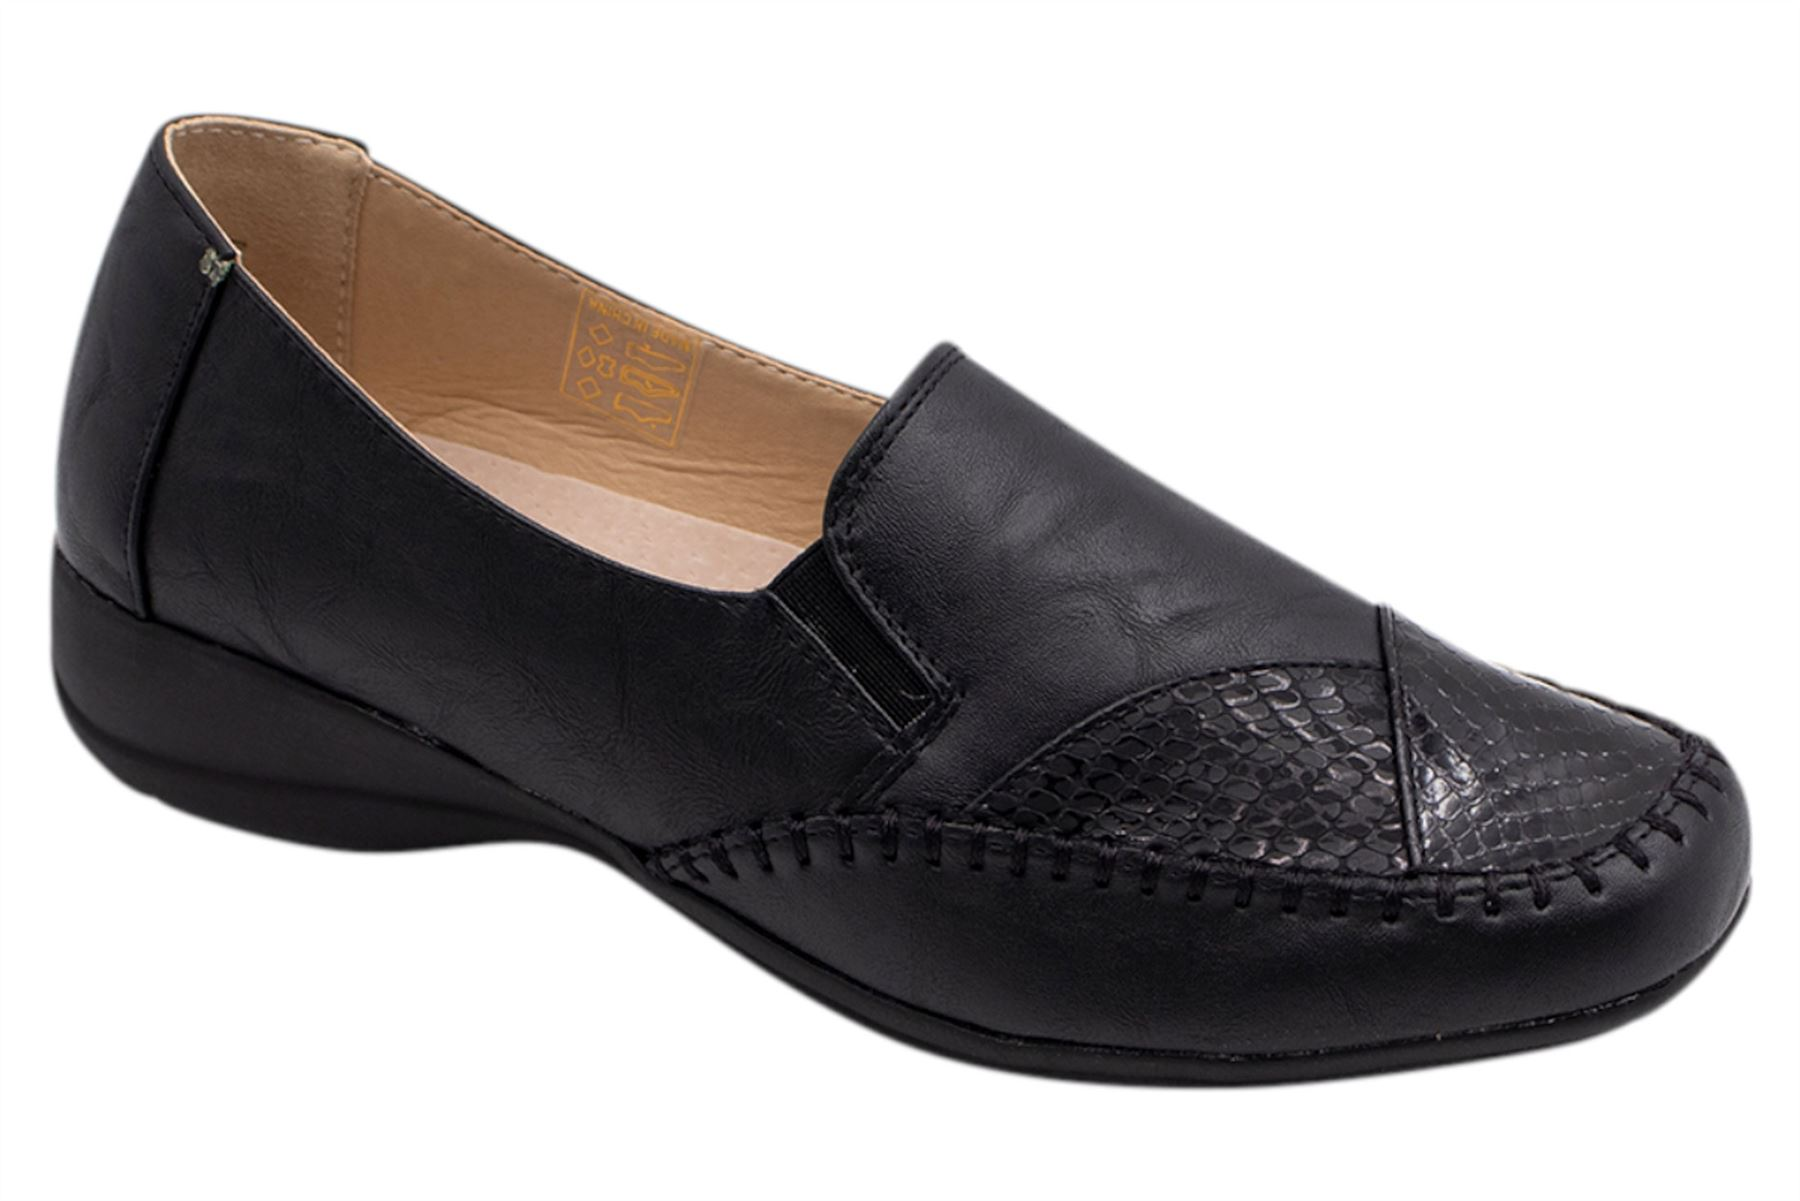 Womens-Flat-Shoes-Ladies-Pumps-Office-Work-Casual-Slip-On-Loafer-Size thumbnail 10